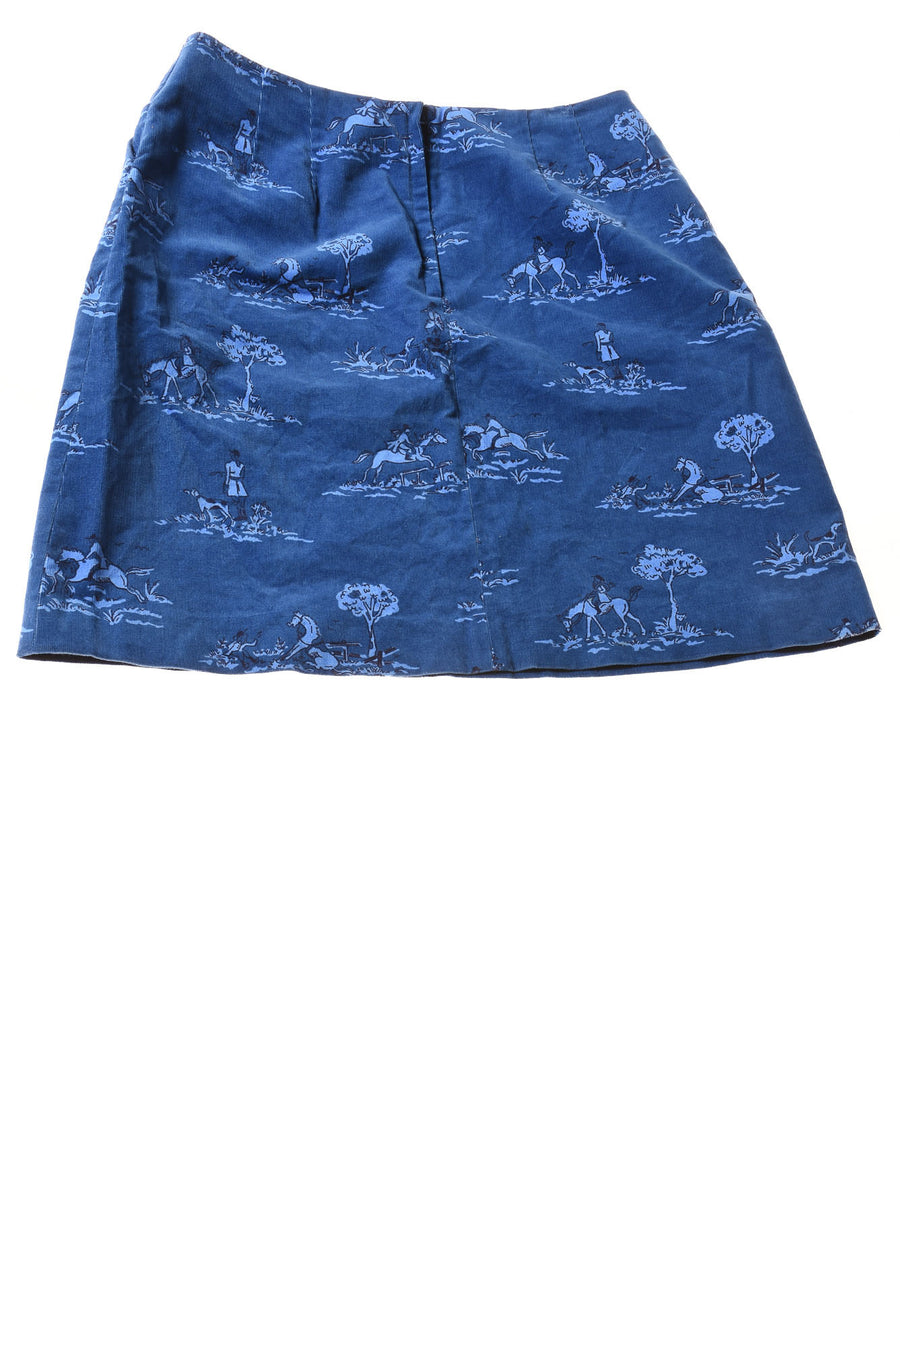 USED Lilly Pulitzer Women's Skirt 8 Blue / Print